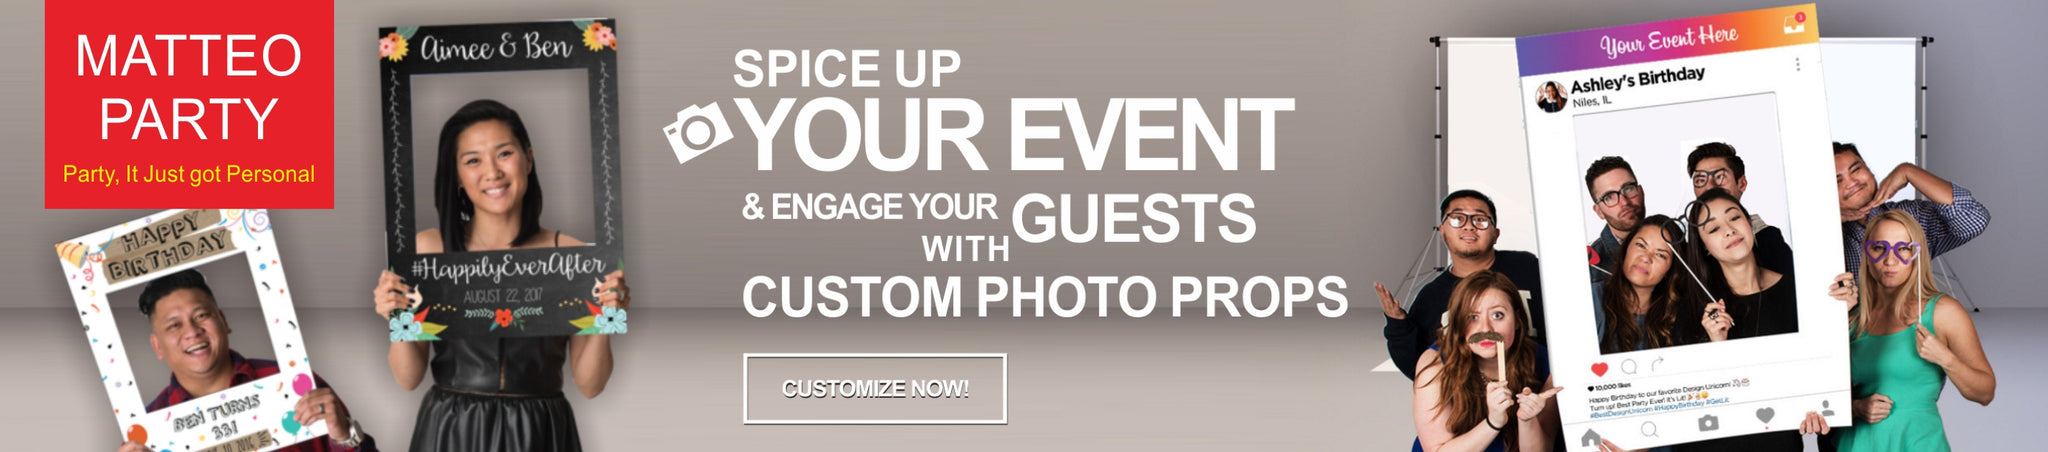 Photo Booth Frames – MATTEO PARTY